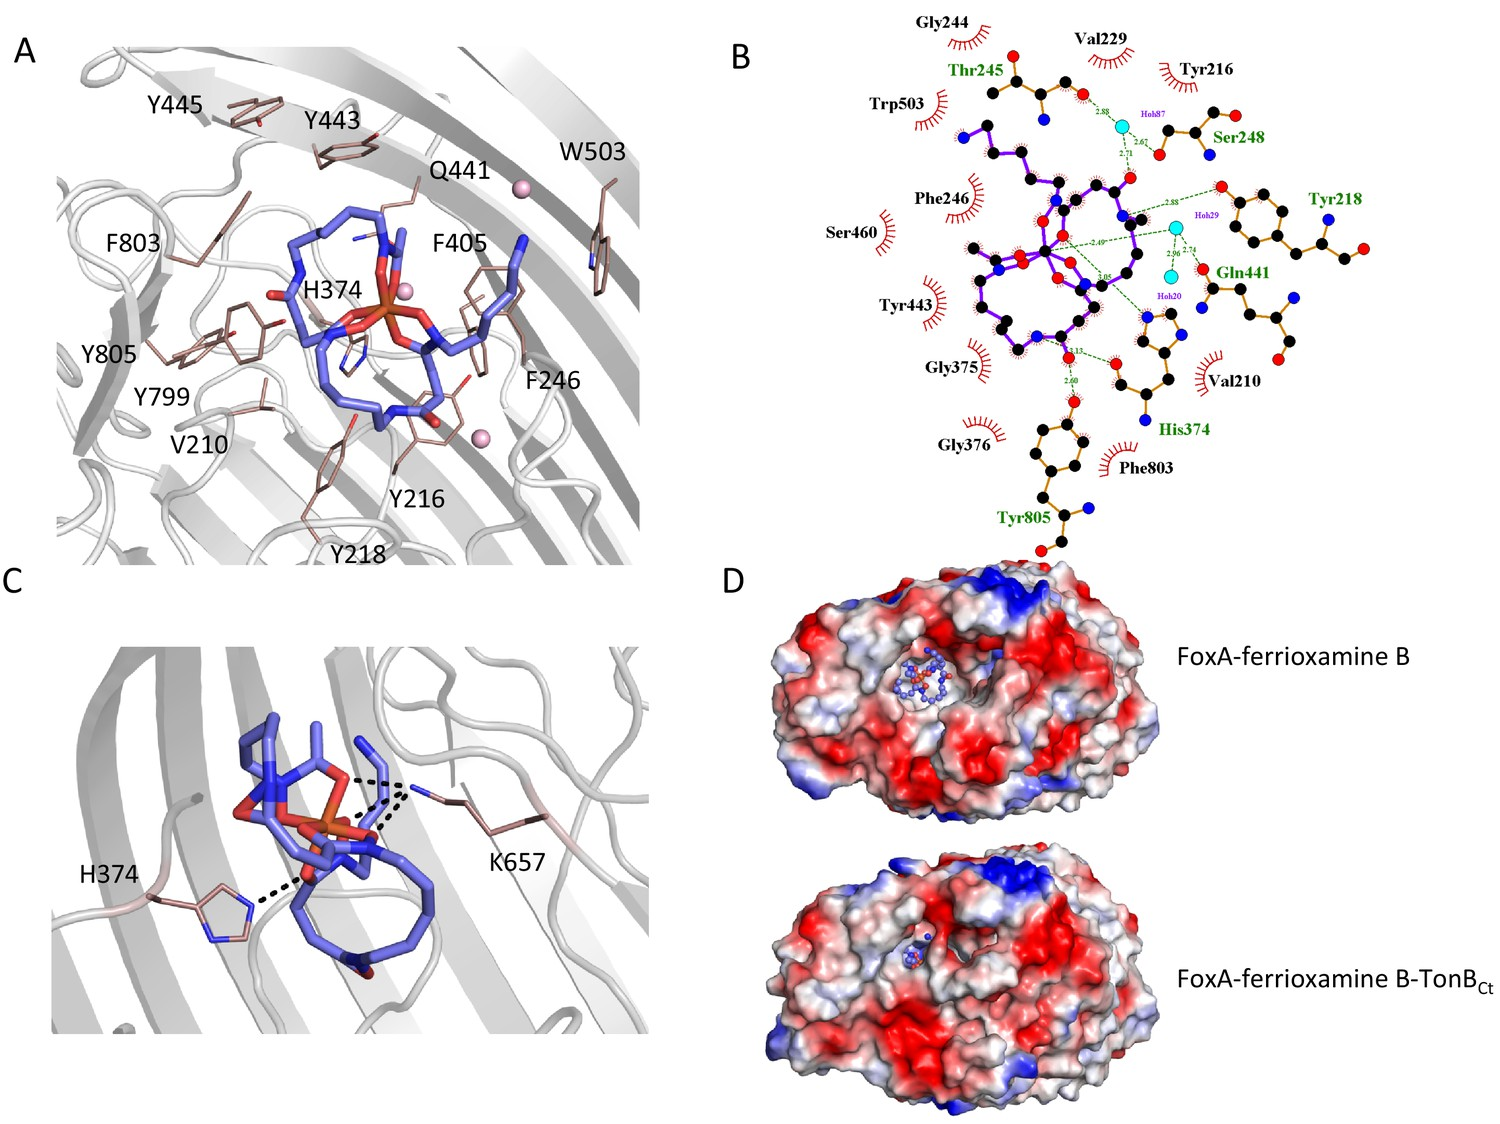 Ternary structure of the outer membrane transporter FoxA